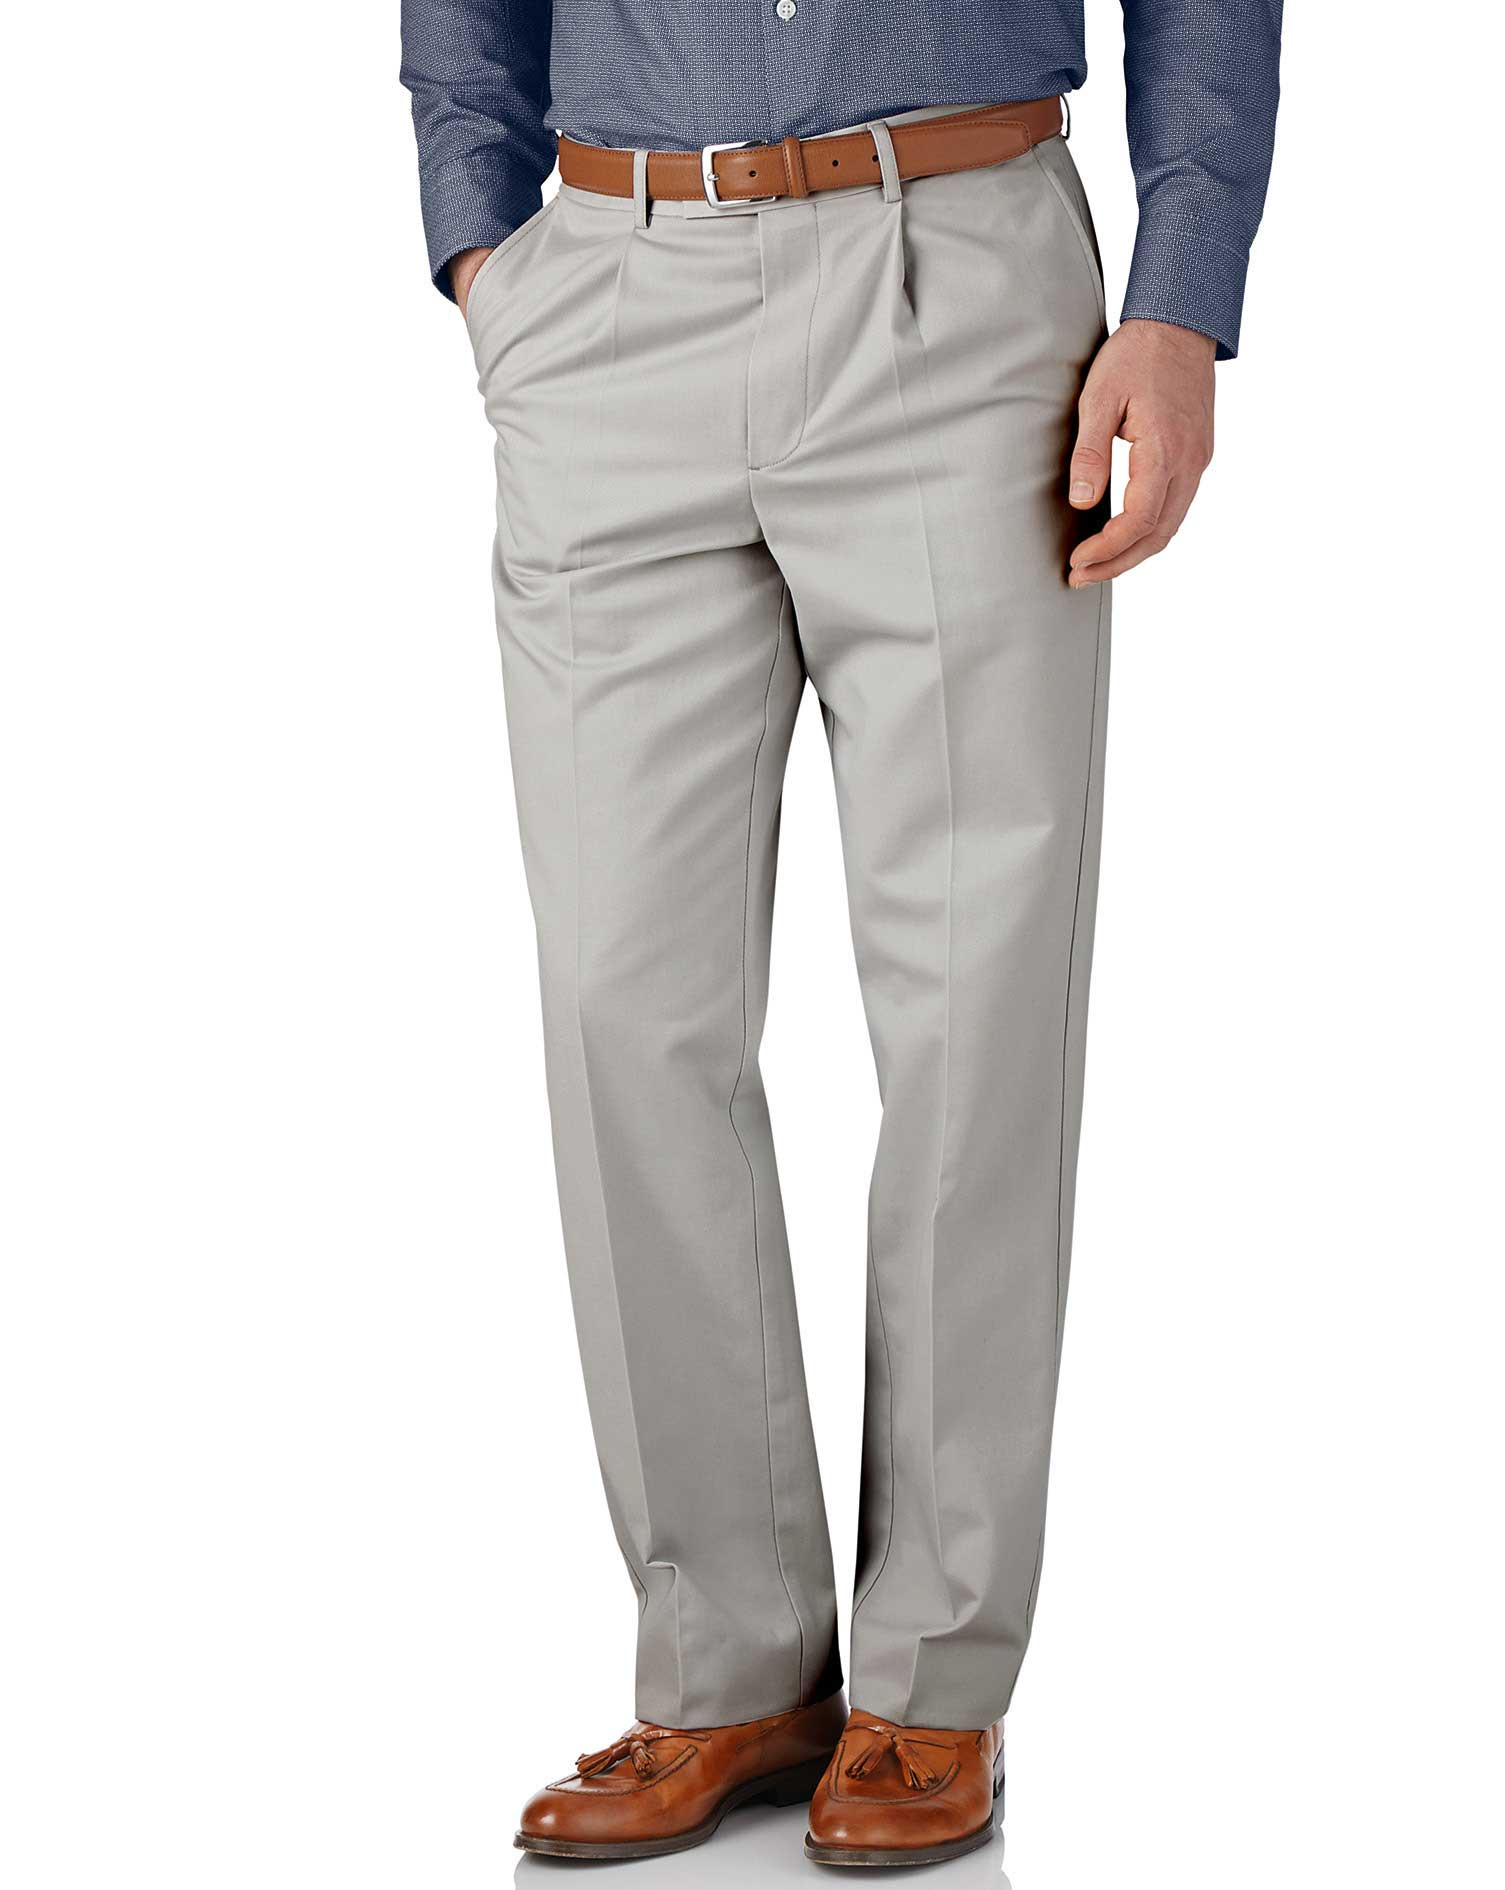 Silver Grey Classic Fit Single Pleat Non-Iron Cotton Chino Trousers Size W38 L34 by Charles Tyrwhitt